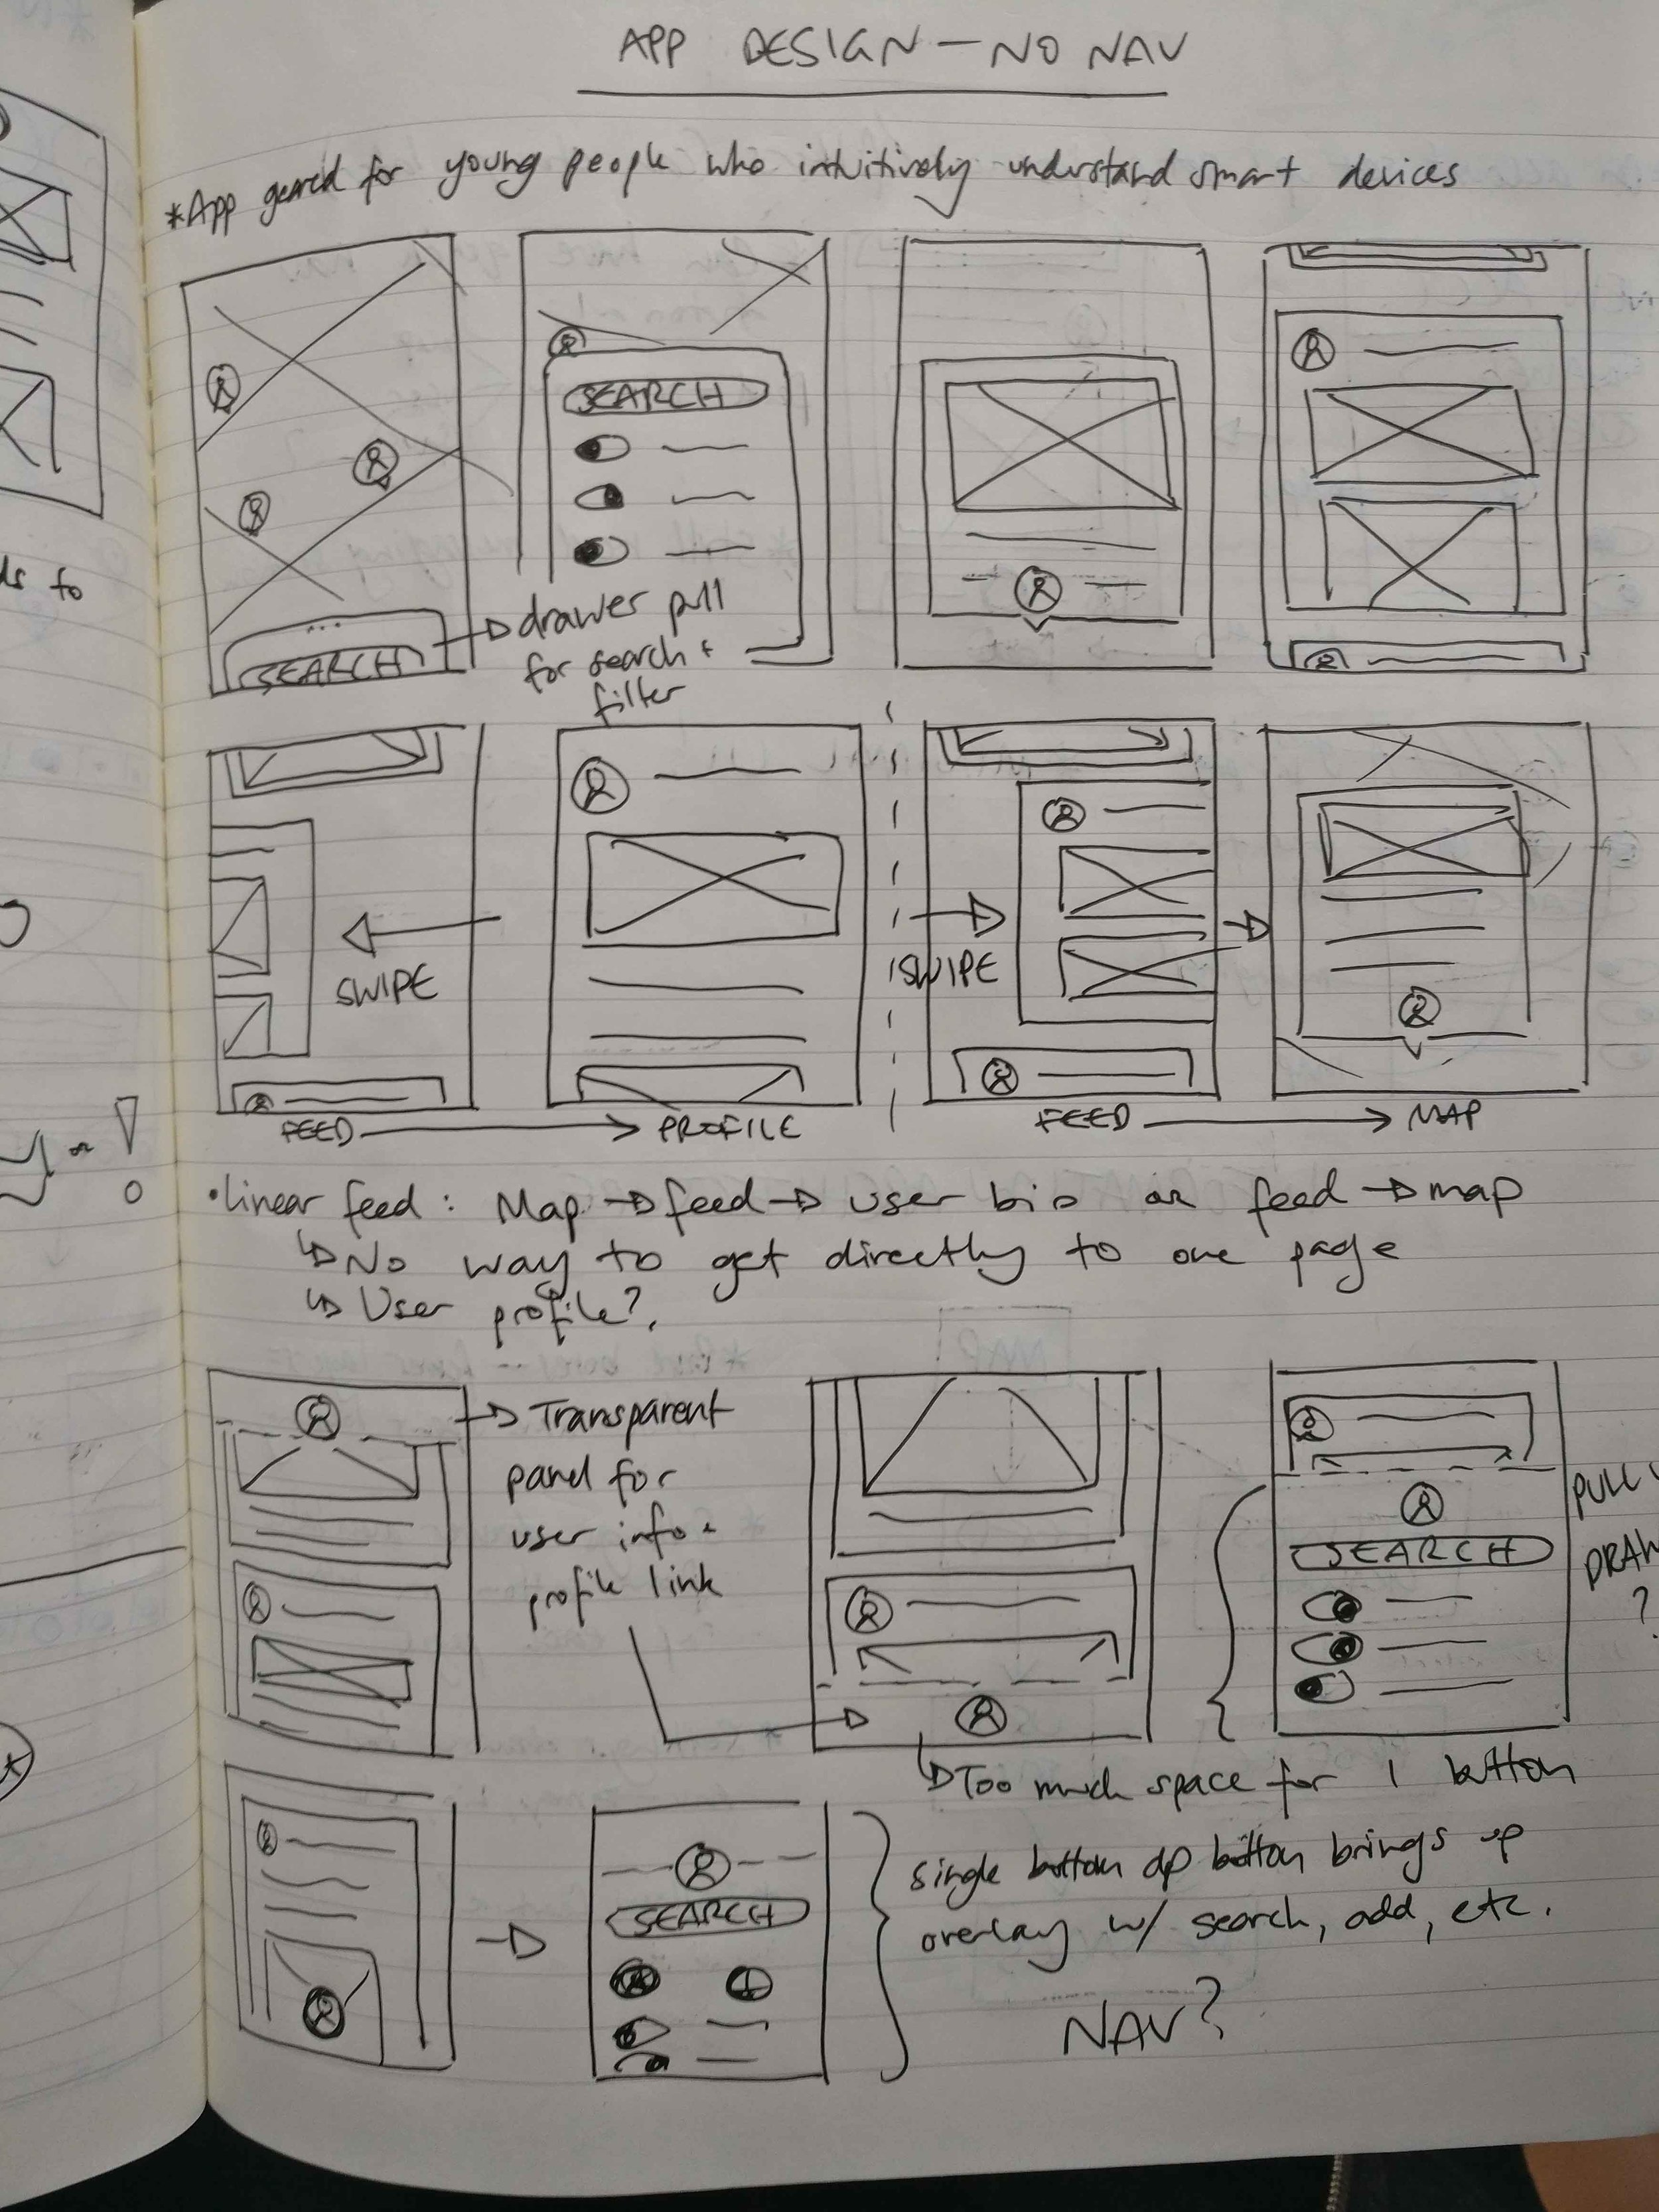 Sketches of my app design and user flows led to wireframing.